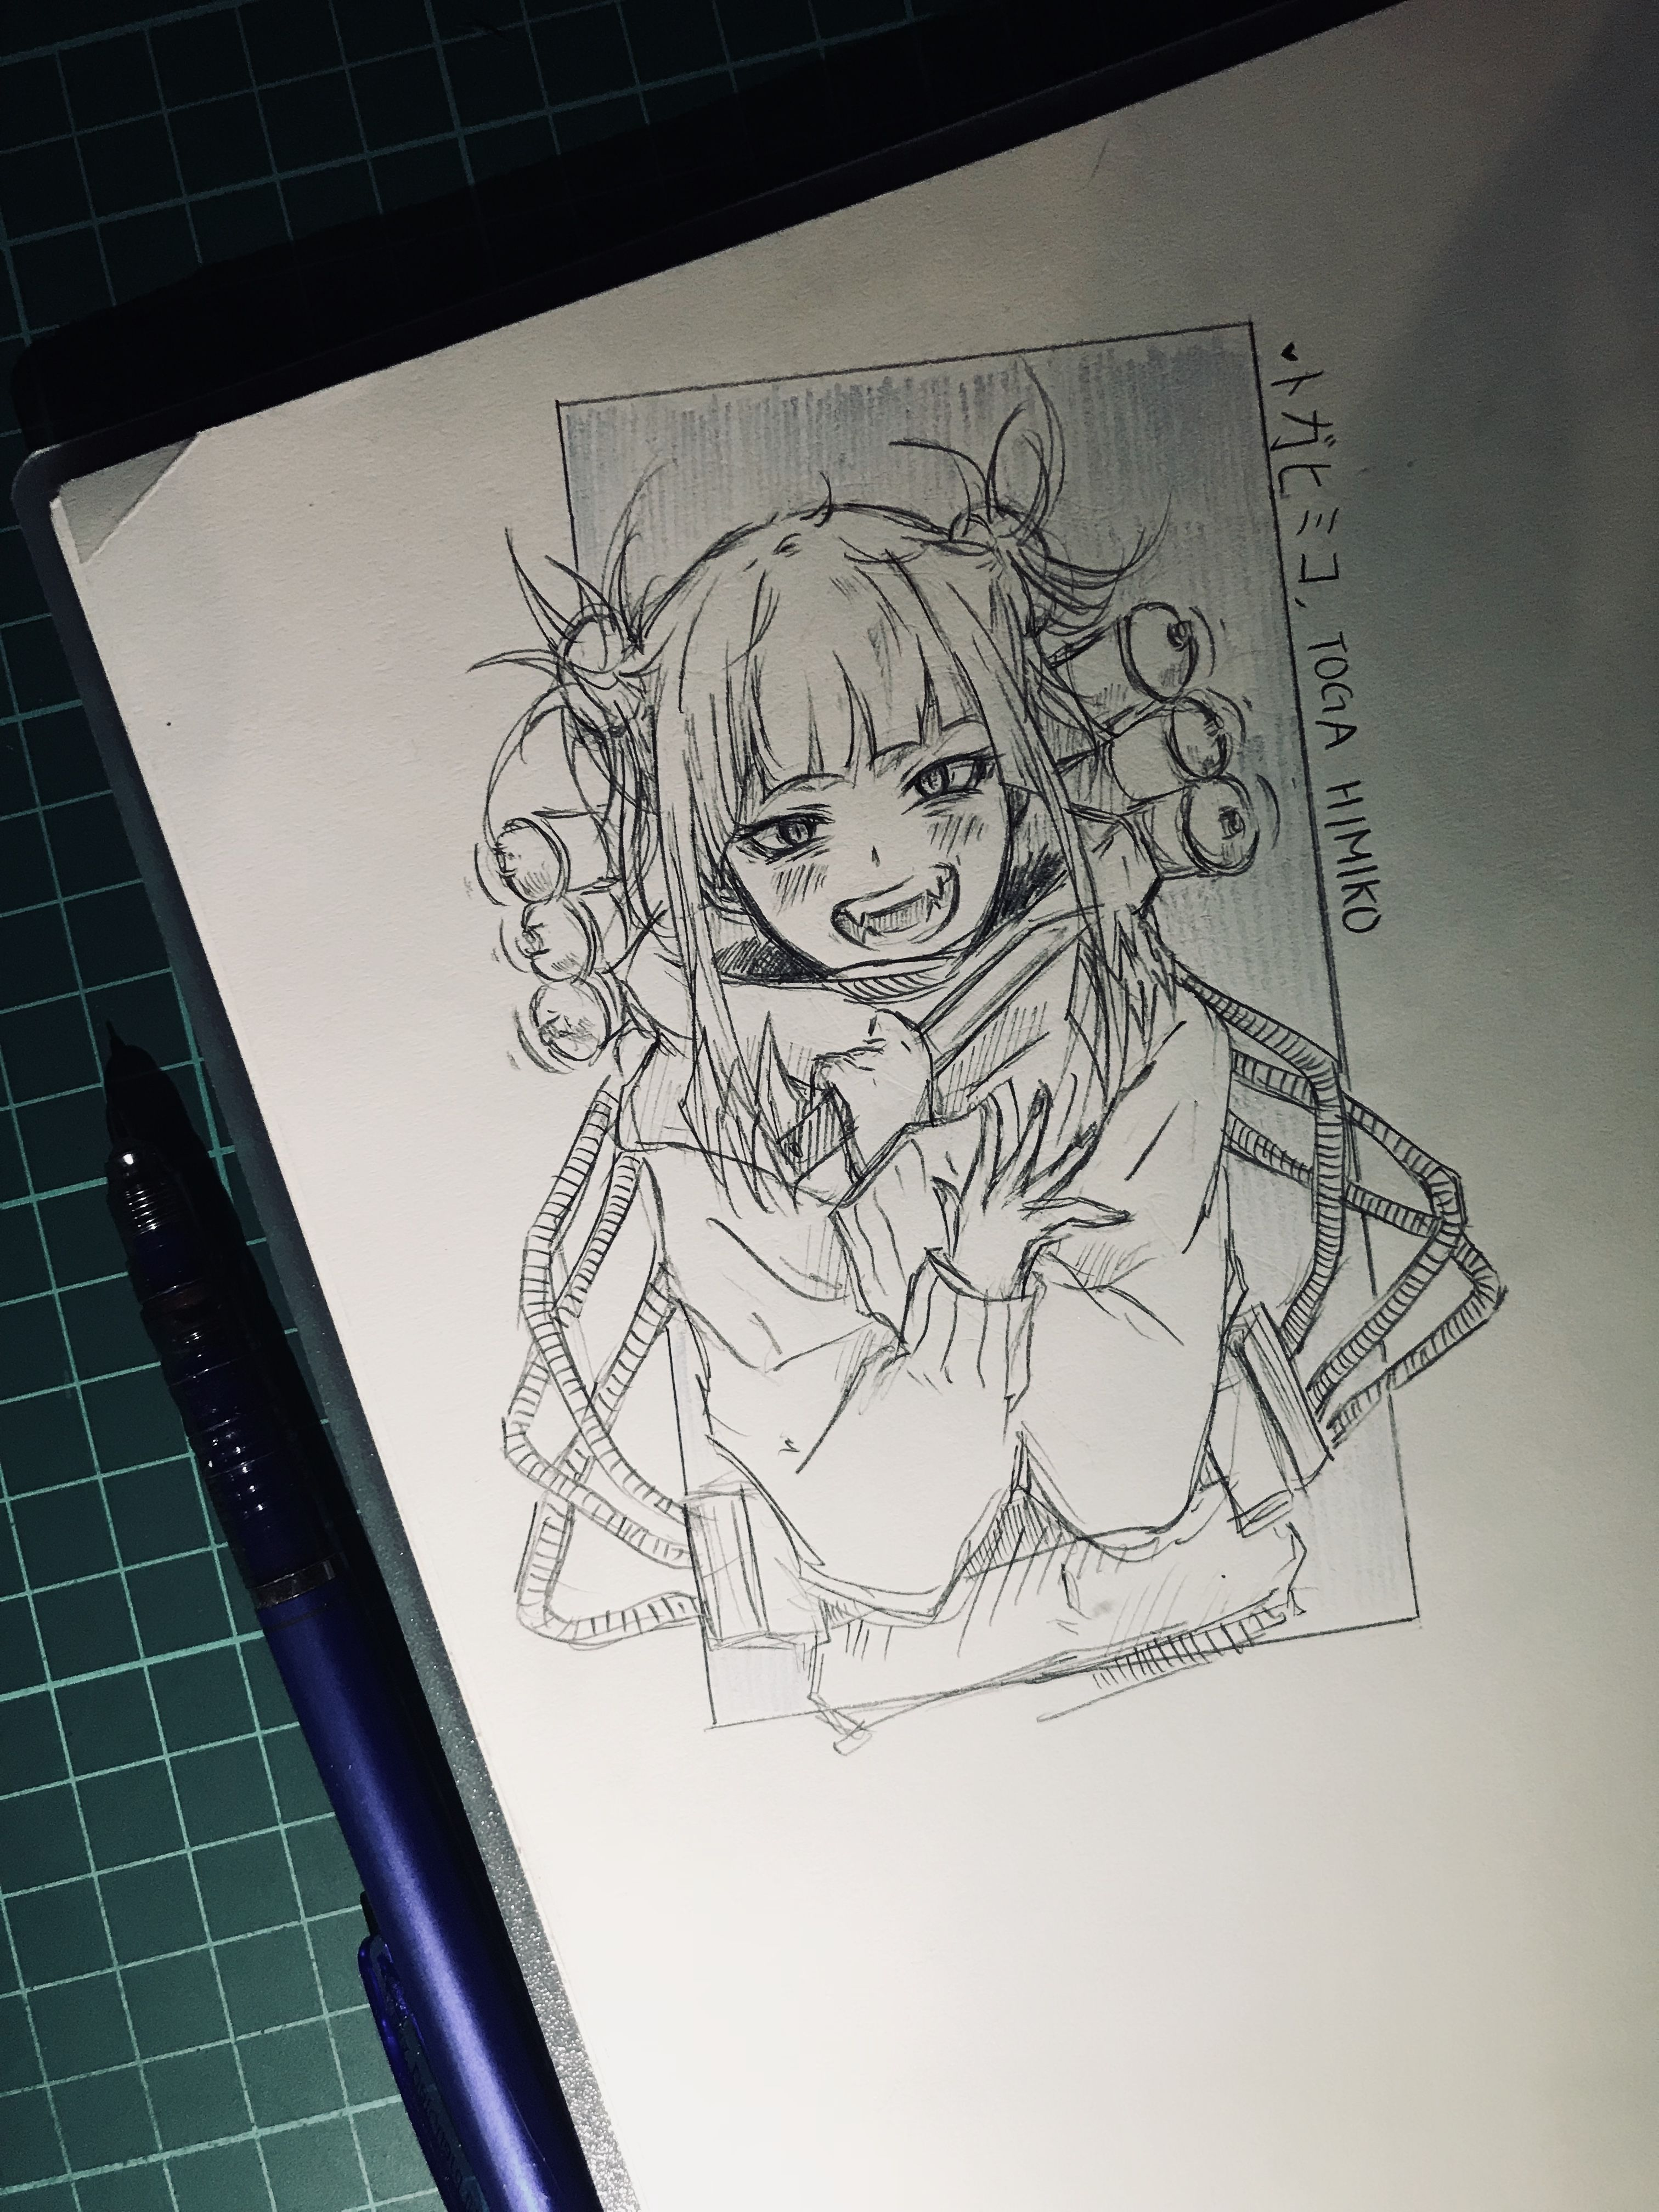 Himiko Toga From Boku No Hero Academia Dammit She S Cute Af